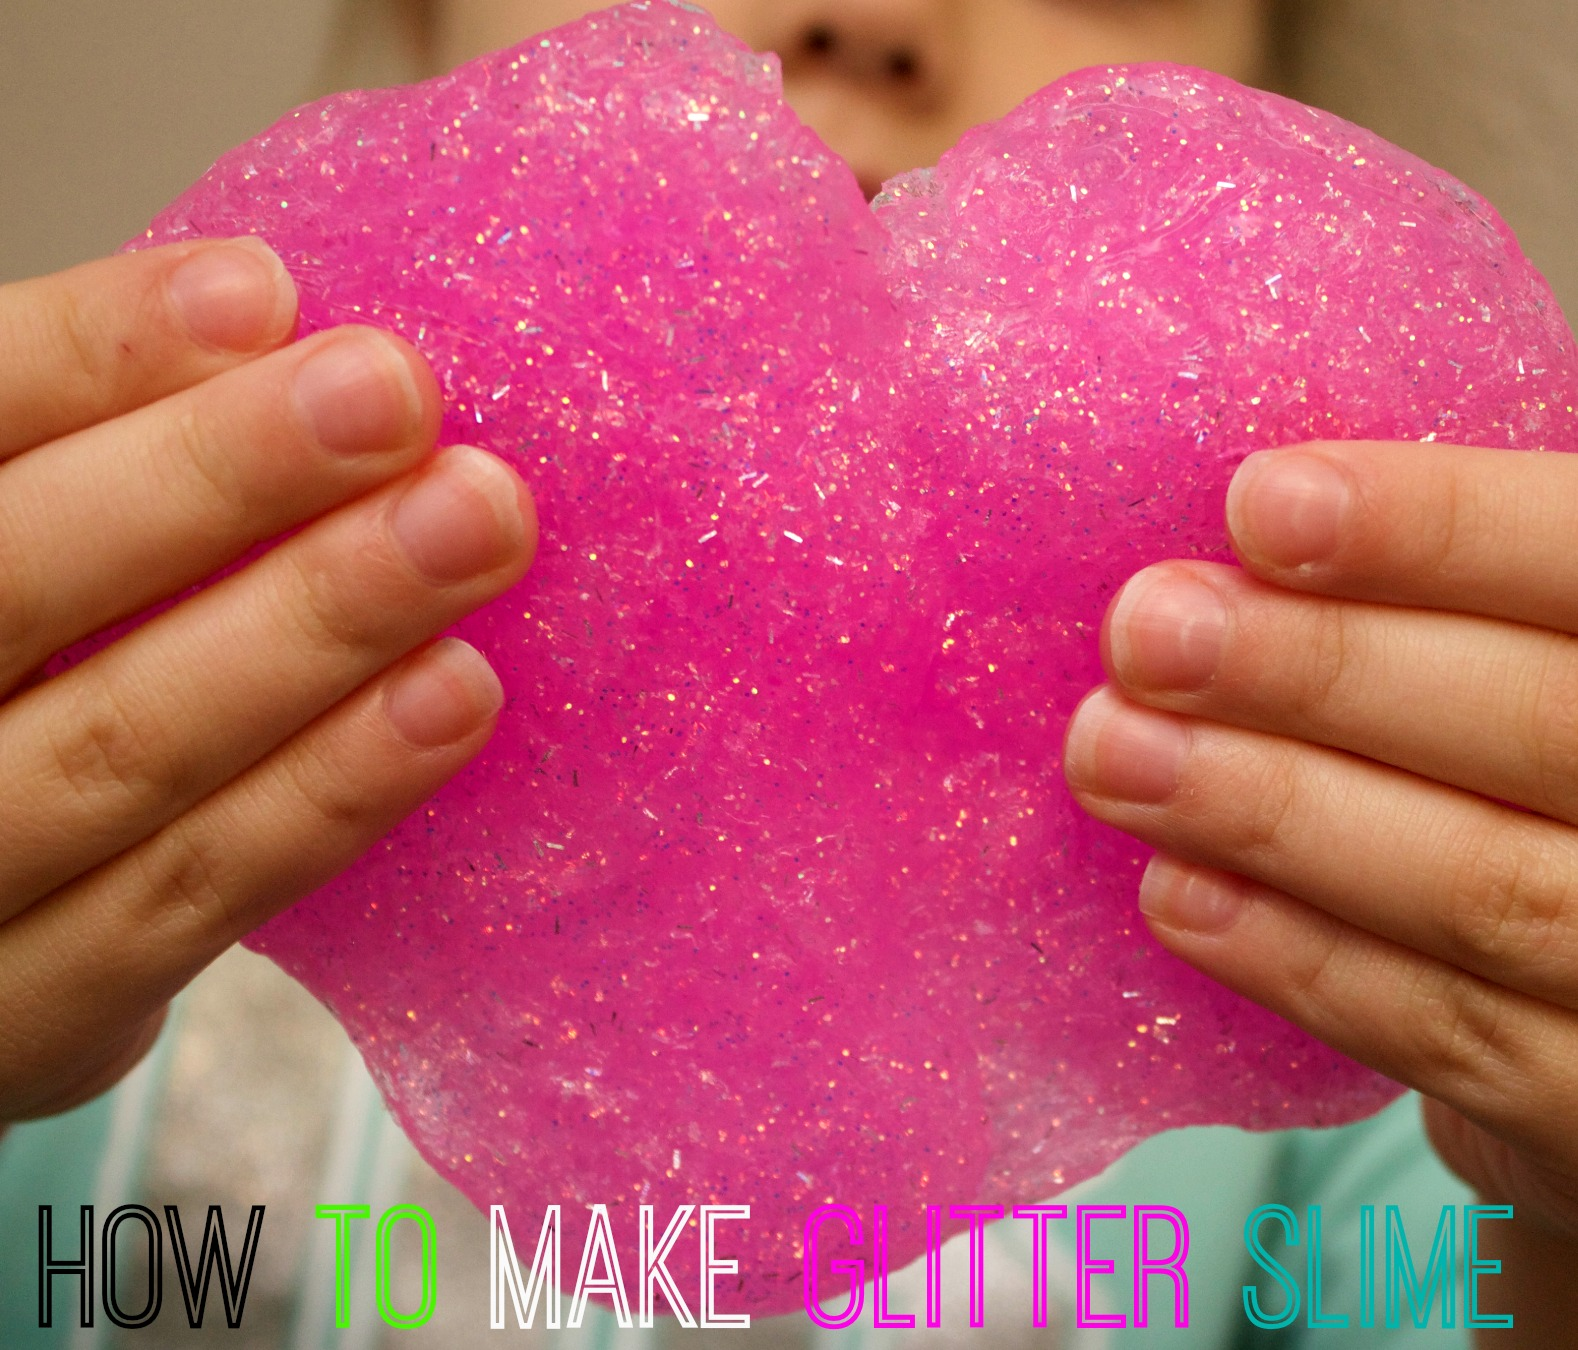 Glitter slime recipe with only 3 ingredients mom luck easy glitter slime recipe ccuart